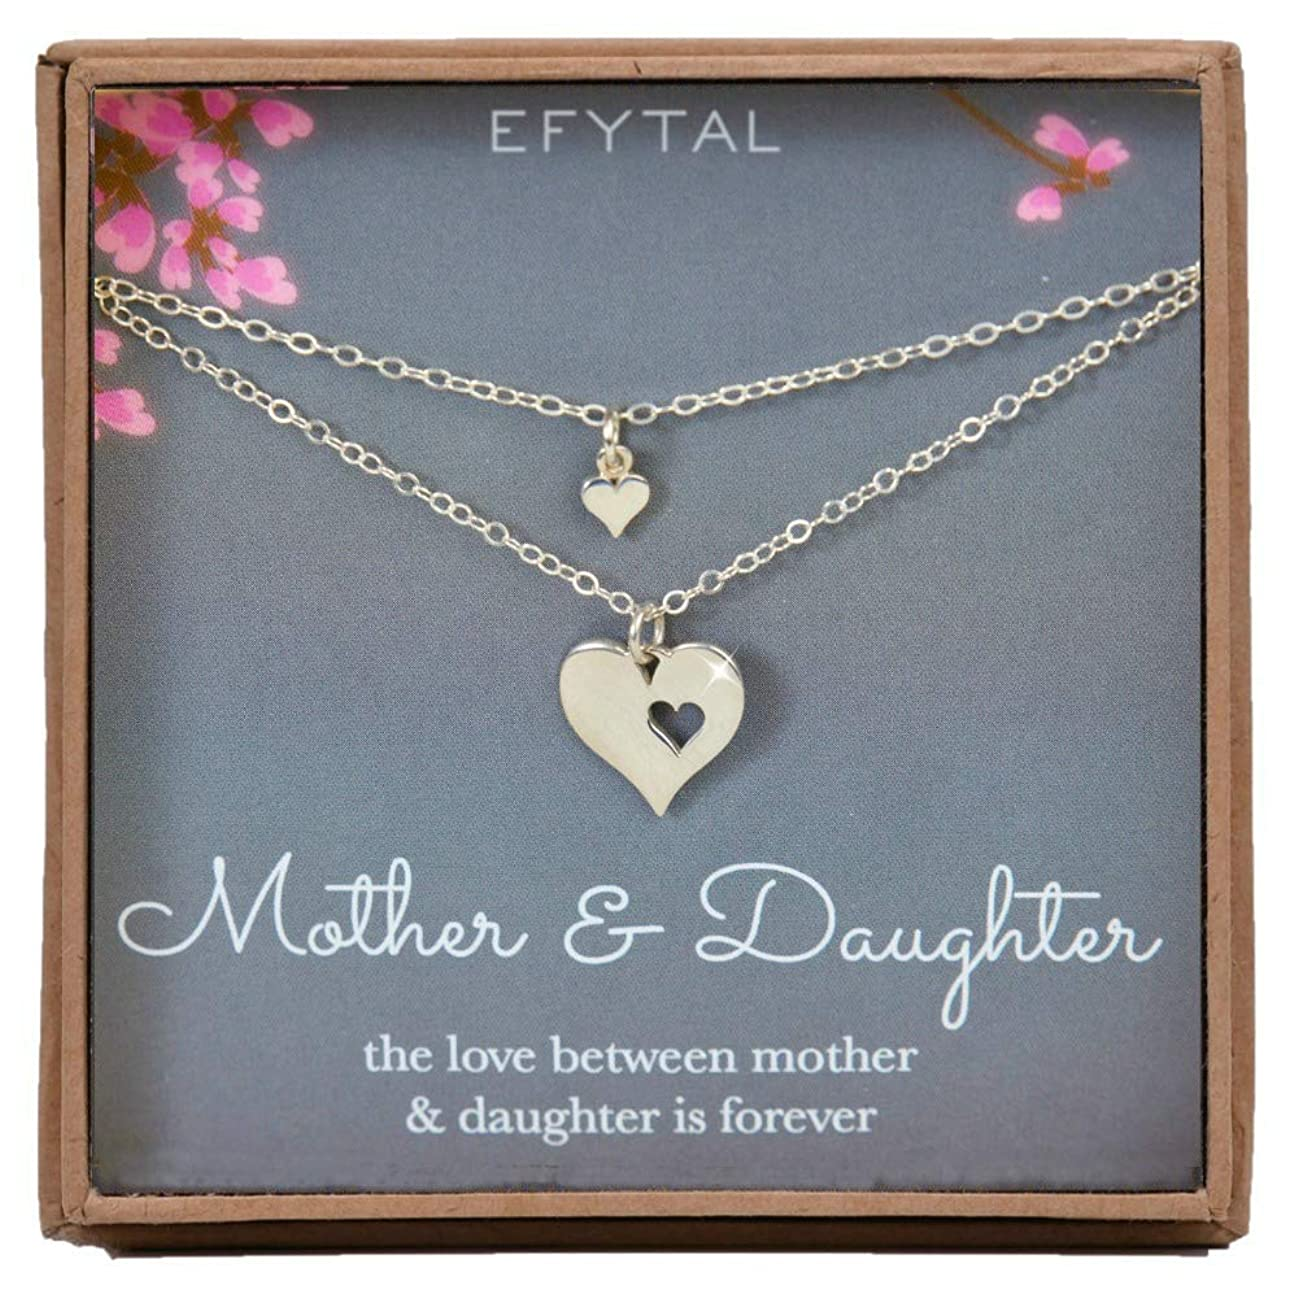 EFYTAL Mother Daughter Set for Two, Cutout Heart Necklaces, 2 Sterling Silver Necklaces